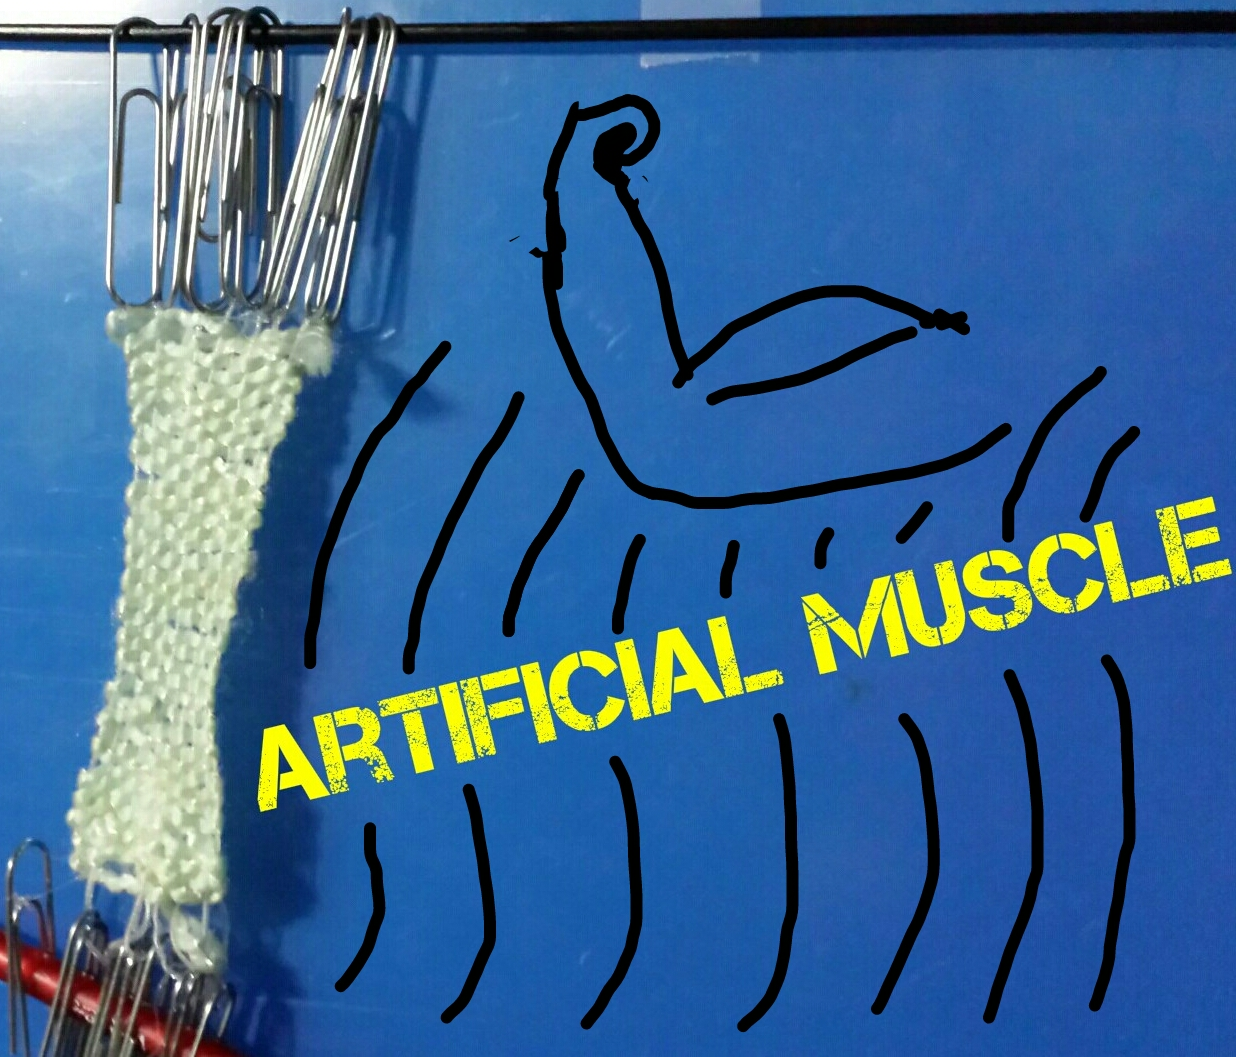 DIY artificial muscle